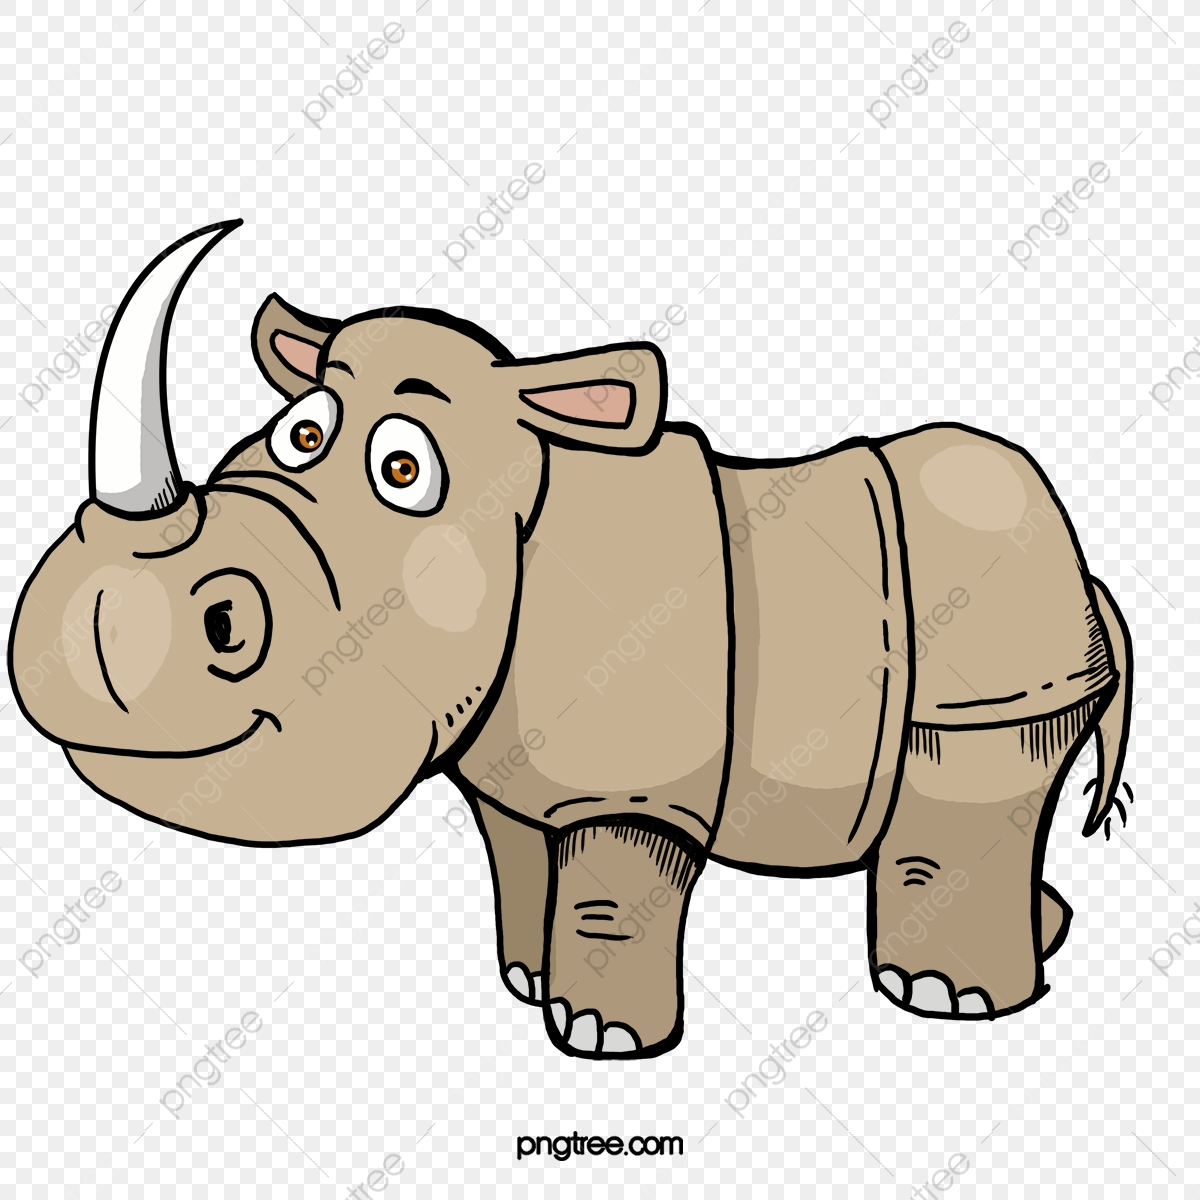 hight resolution of commercial use resource upgrade to premium plan and get license authorization upgradenow cute rhino cute clipart